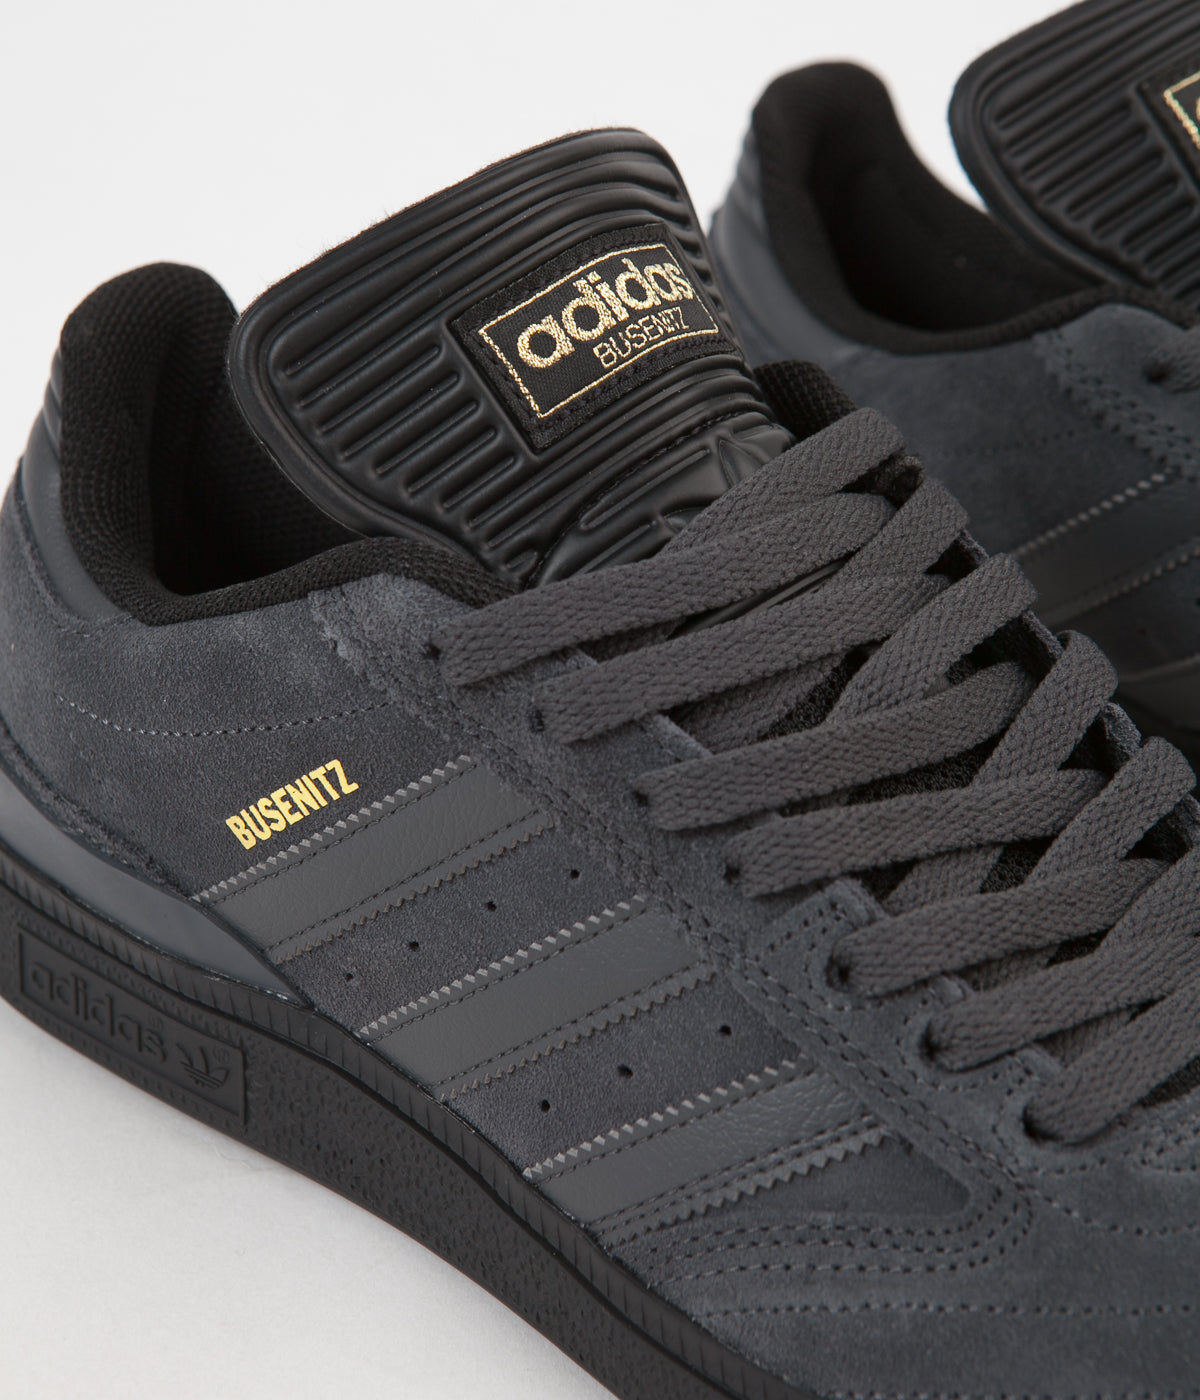 Adidas Busenitz Pro Shoes Core Black Solid Grey Gold